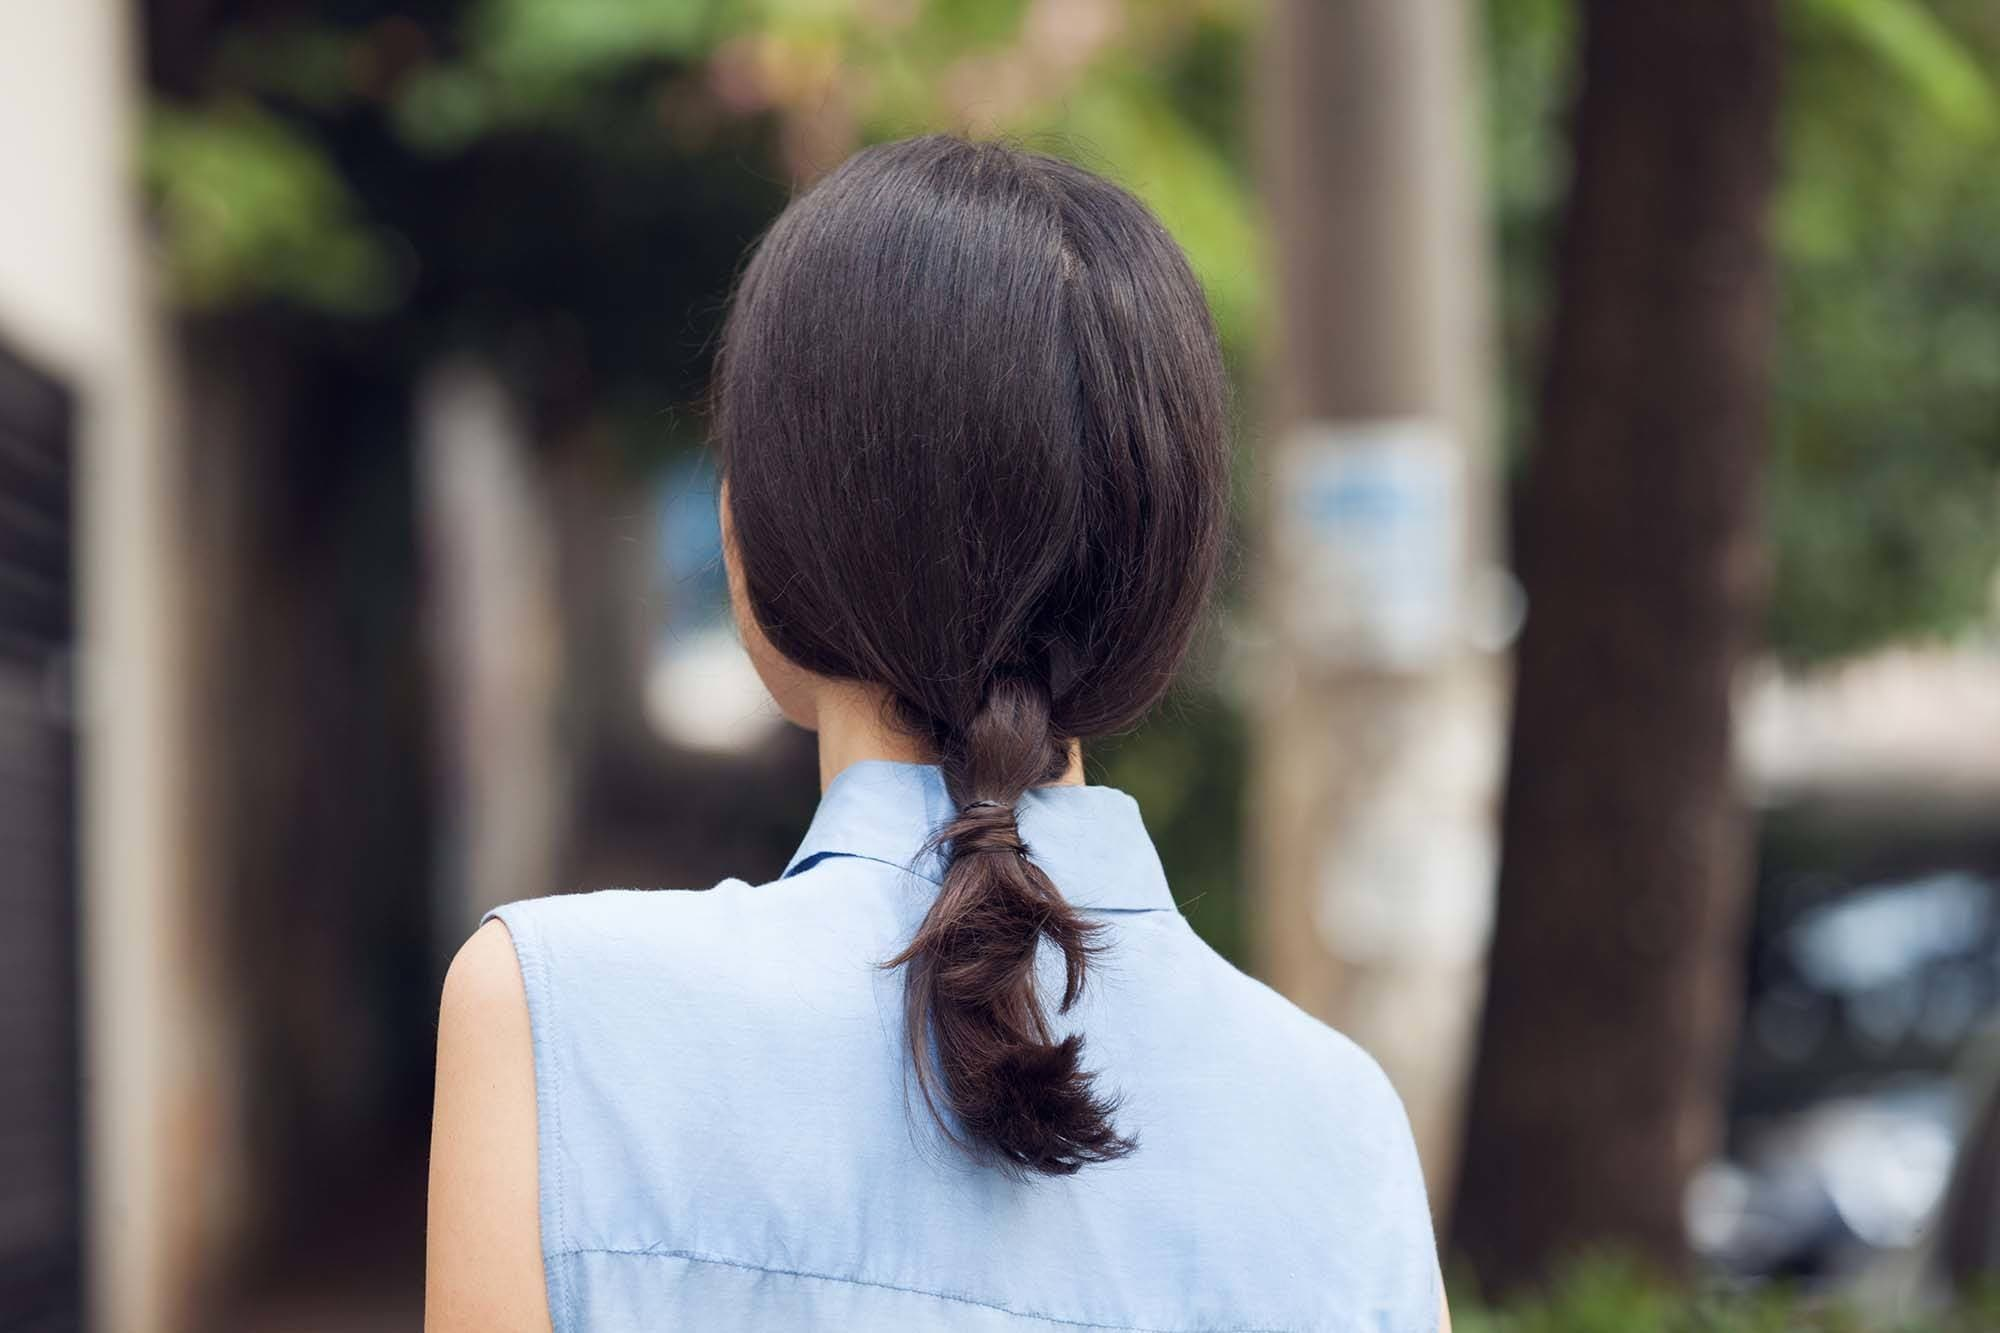 Brunette woman wearing shoulder length hairdos knotted low ponytail.